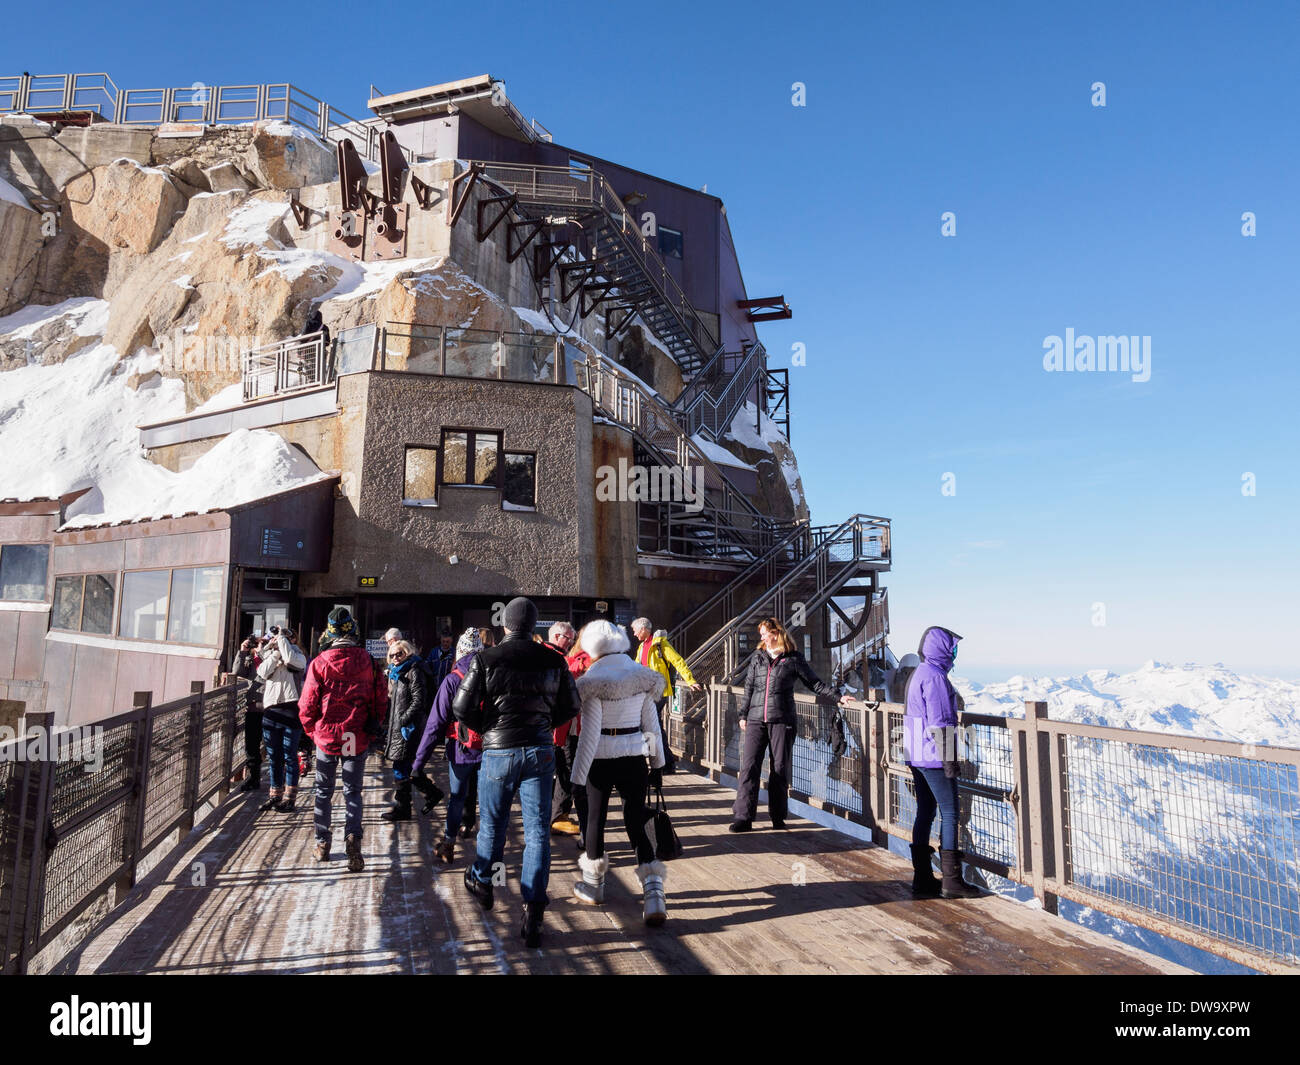 People on bridge viewing platform at Aiguille du Midi top téléphérique cable car station. Chamonix-Mont-Blanc Rhone-Alpes France - Stock Image